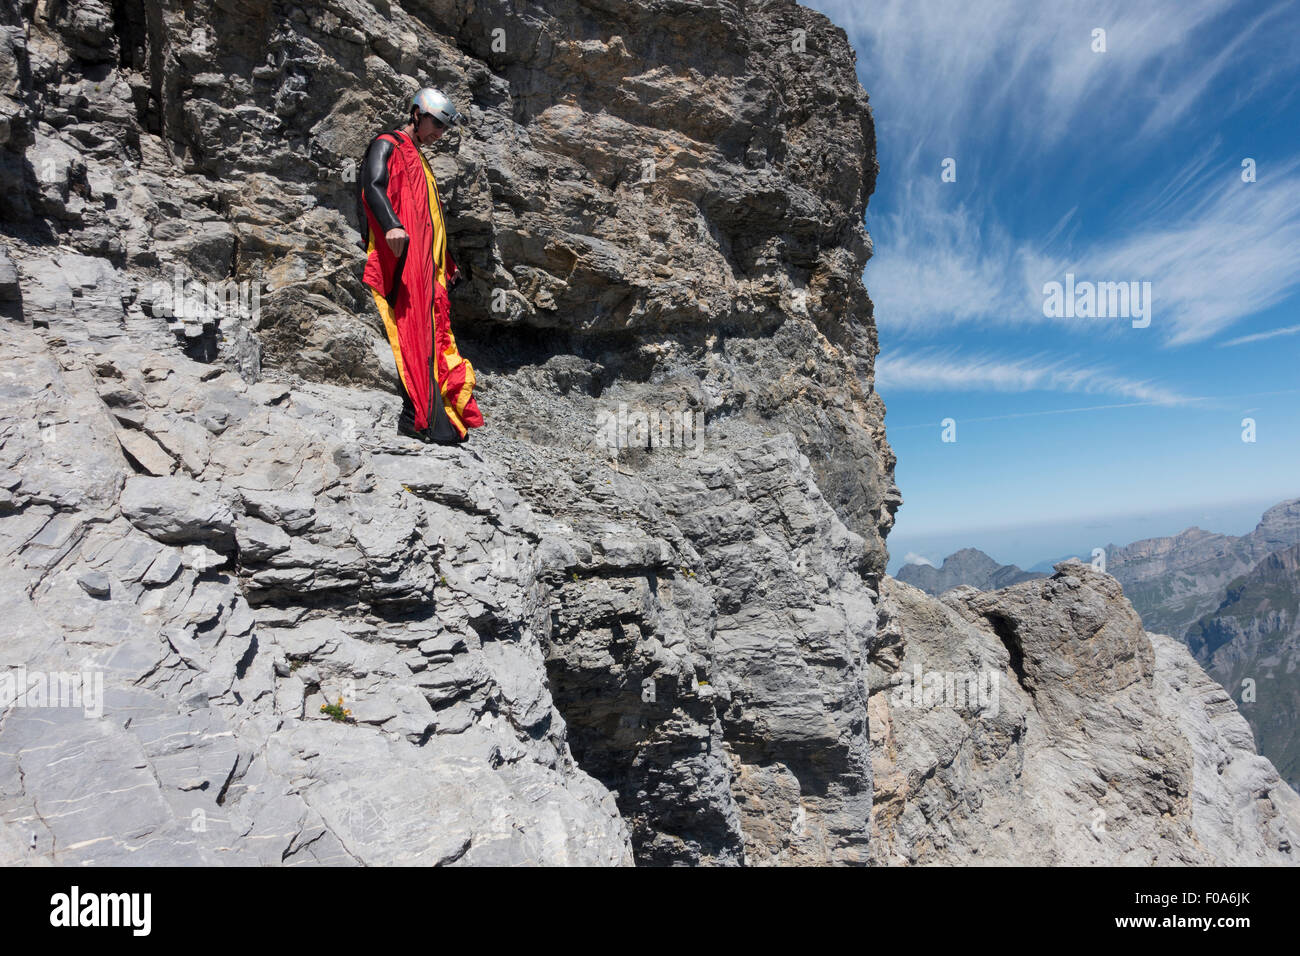 b43a859f275 Wingsuit BASE jumper is getting ready to jump off a cliff and checking the  altitude by facing downward   adjusting his wings.